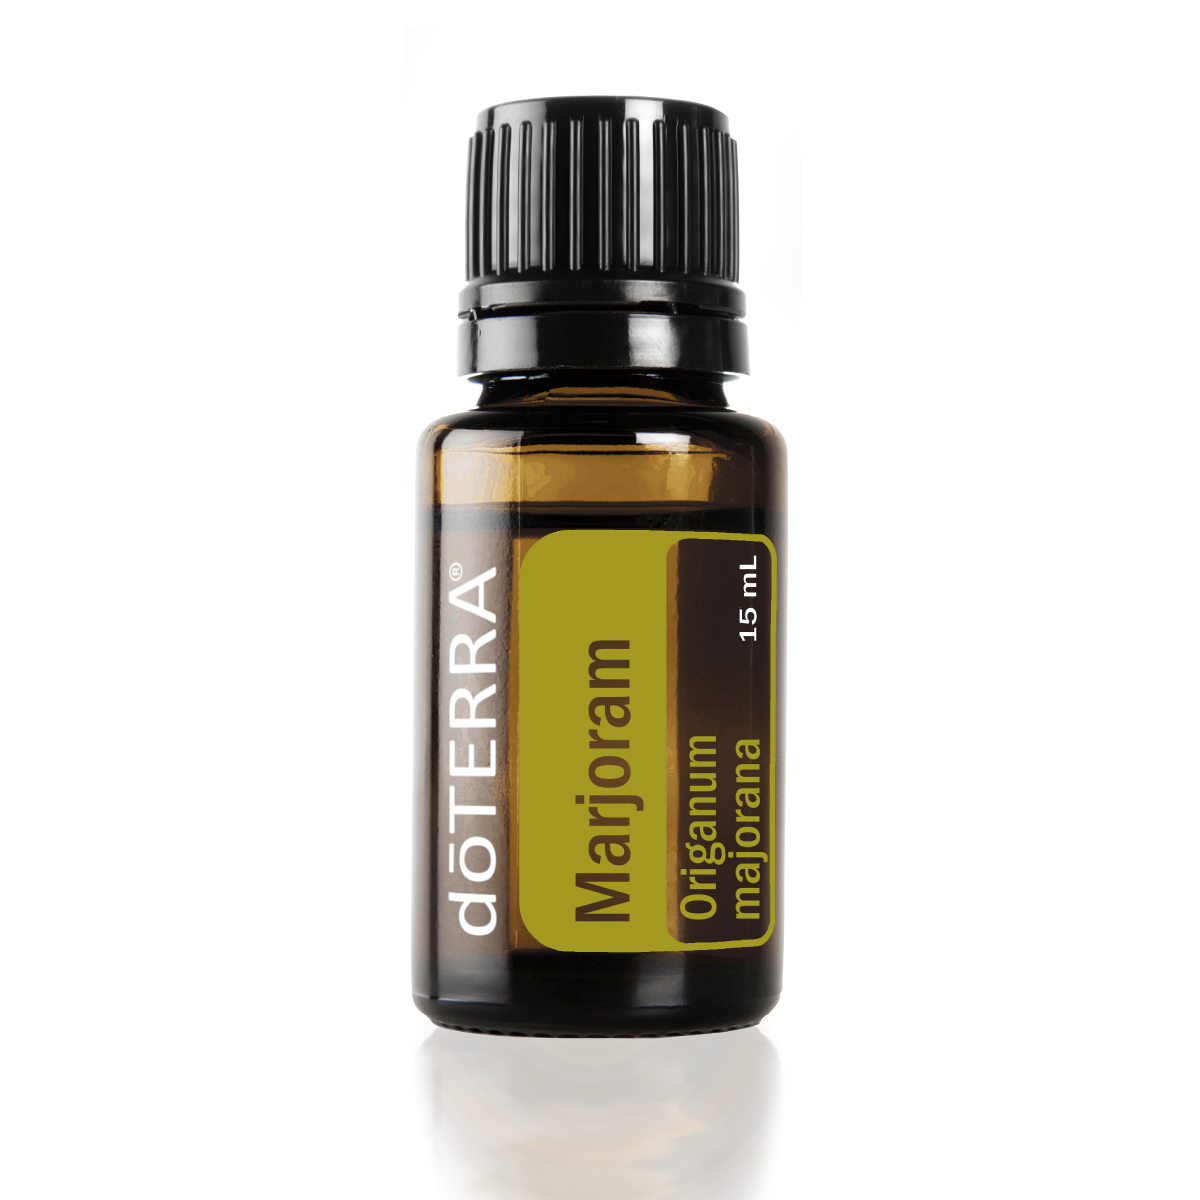 Bottle of doTERRA Marjoram essential oil. What are the benefits of Marjoram oil? Marjoram oil has benefits for massage and potential internal benefits.